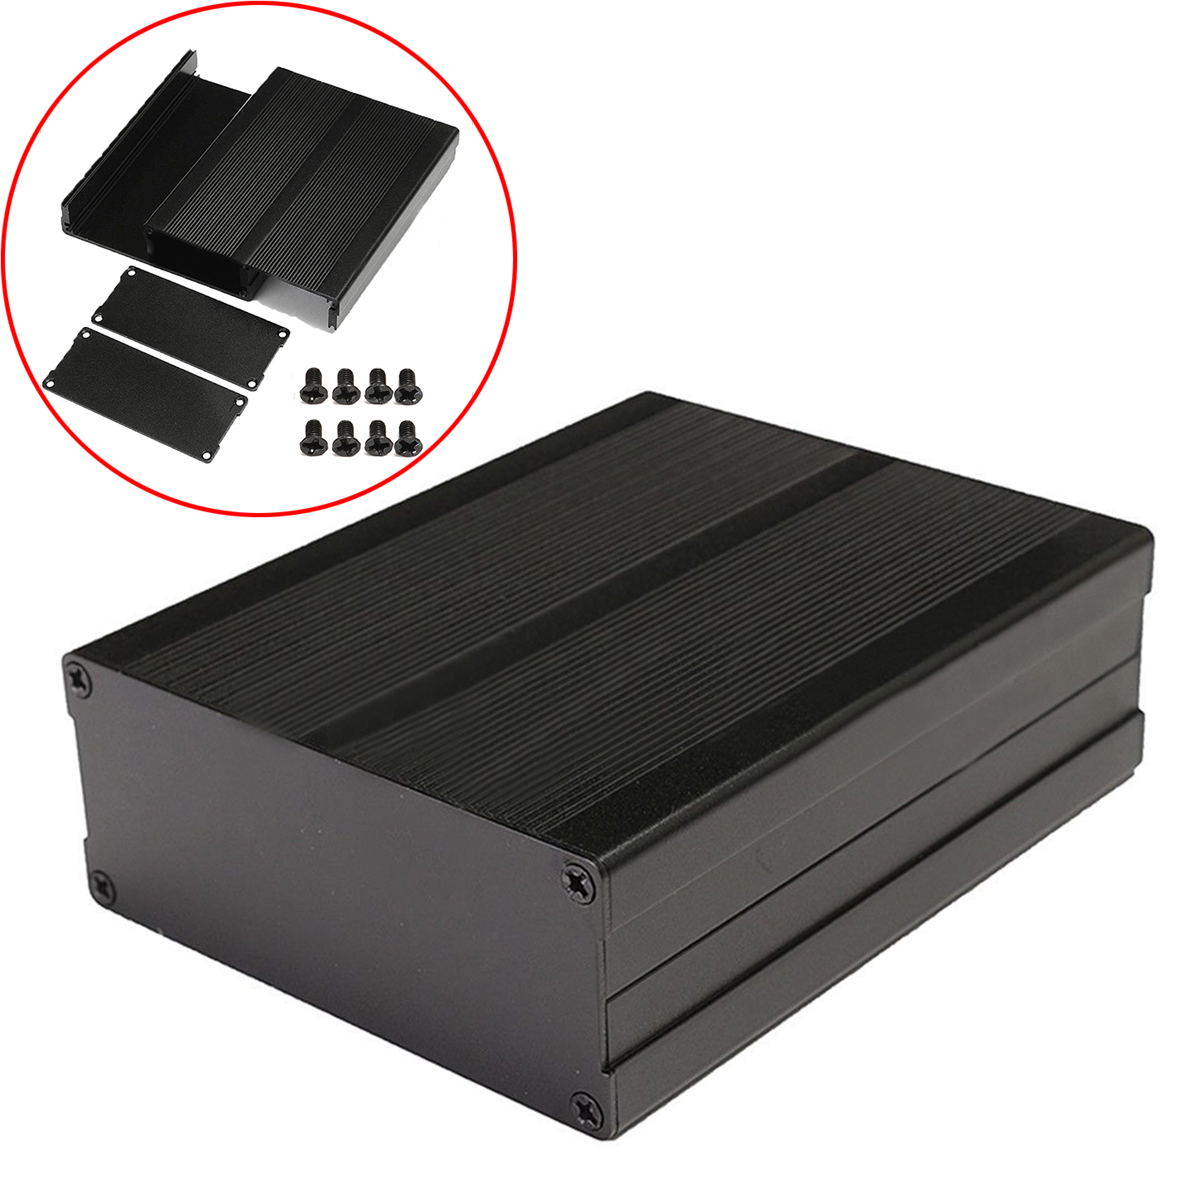 Split Body Black Extruded Aluminum Enclosure Instrument Box Mayitr DIY Amplifiers Electronic Project Case Shell 120*97*40mm 1 piece free shipping anodizing aluminium amplifiers black wall mounted distribution case 80x234x250mm